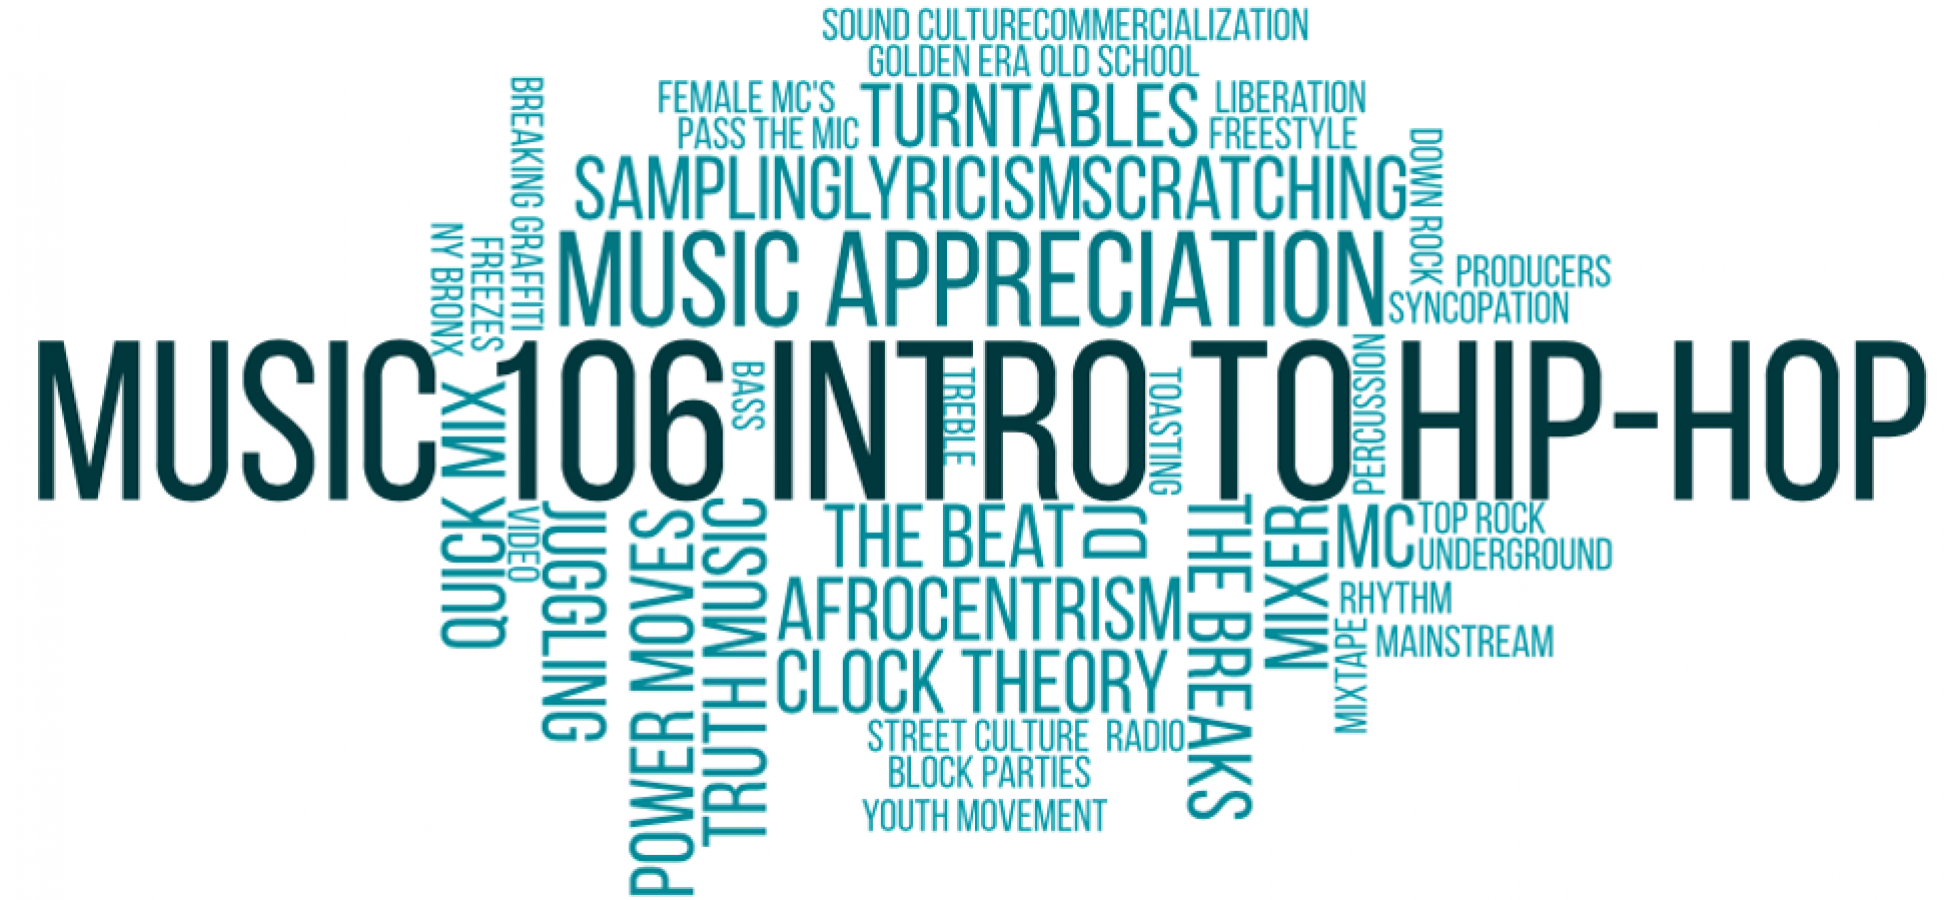 a word cloud featuring terms related to hip hop culture